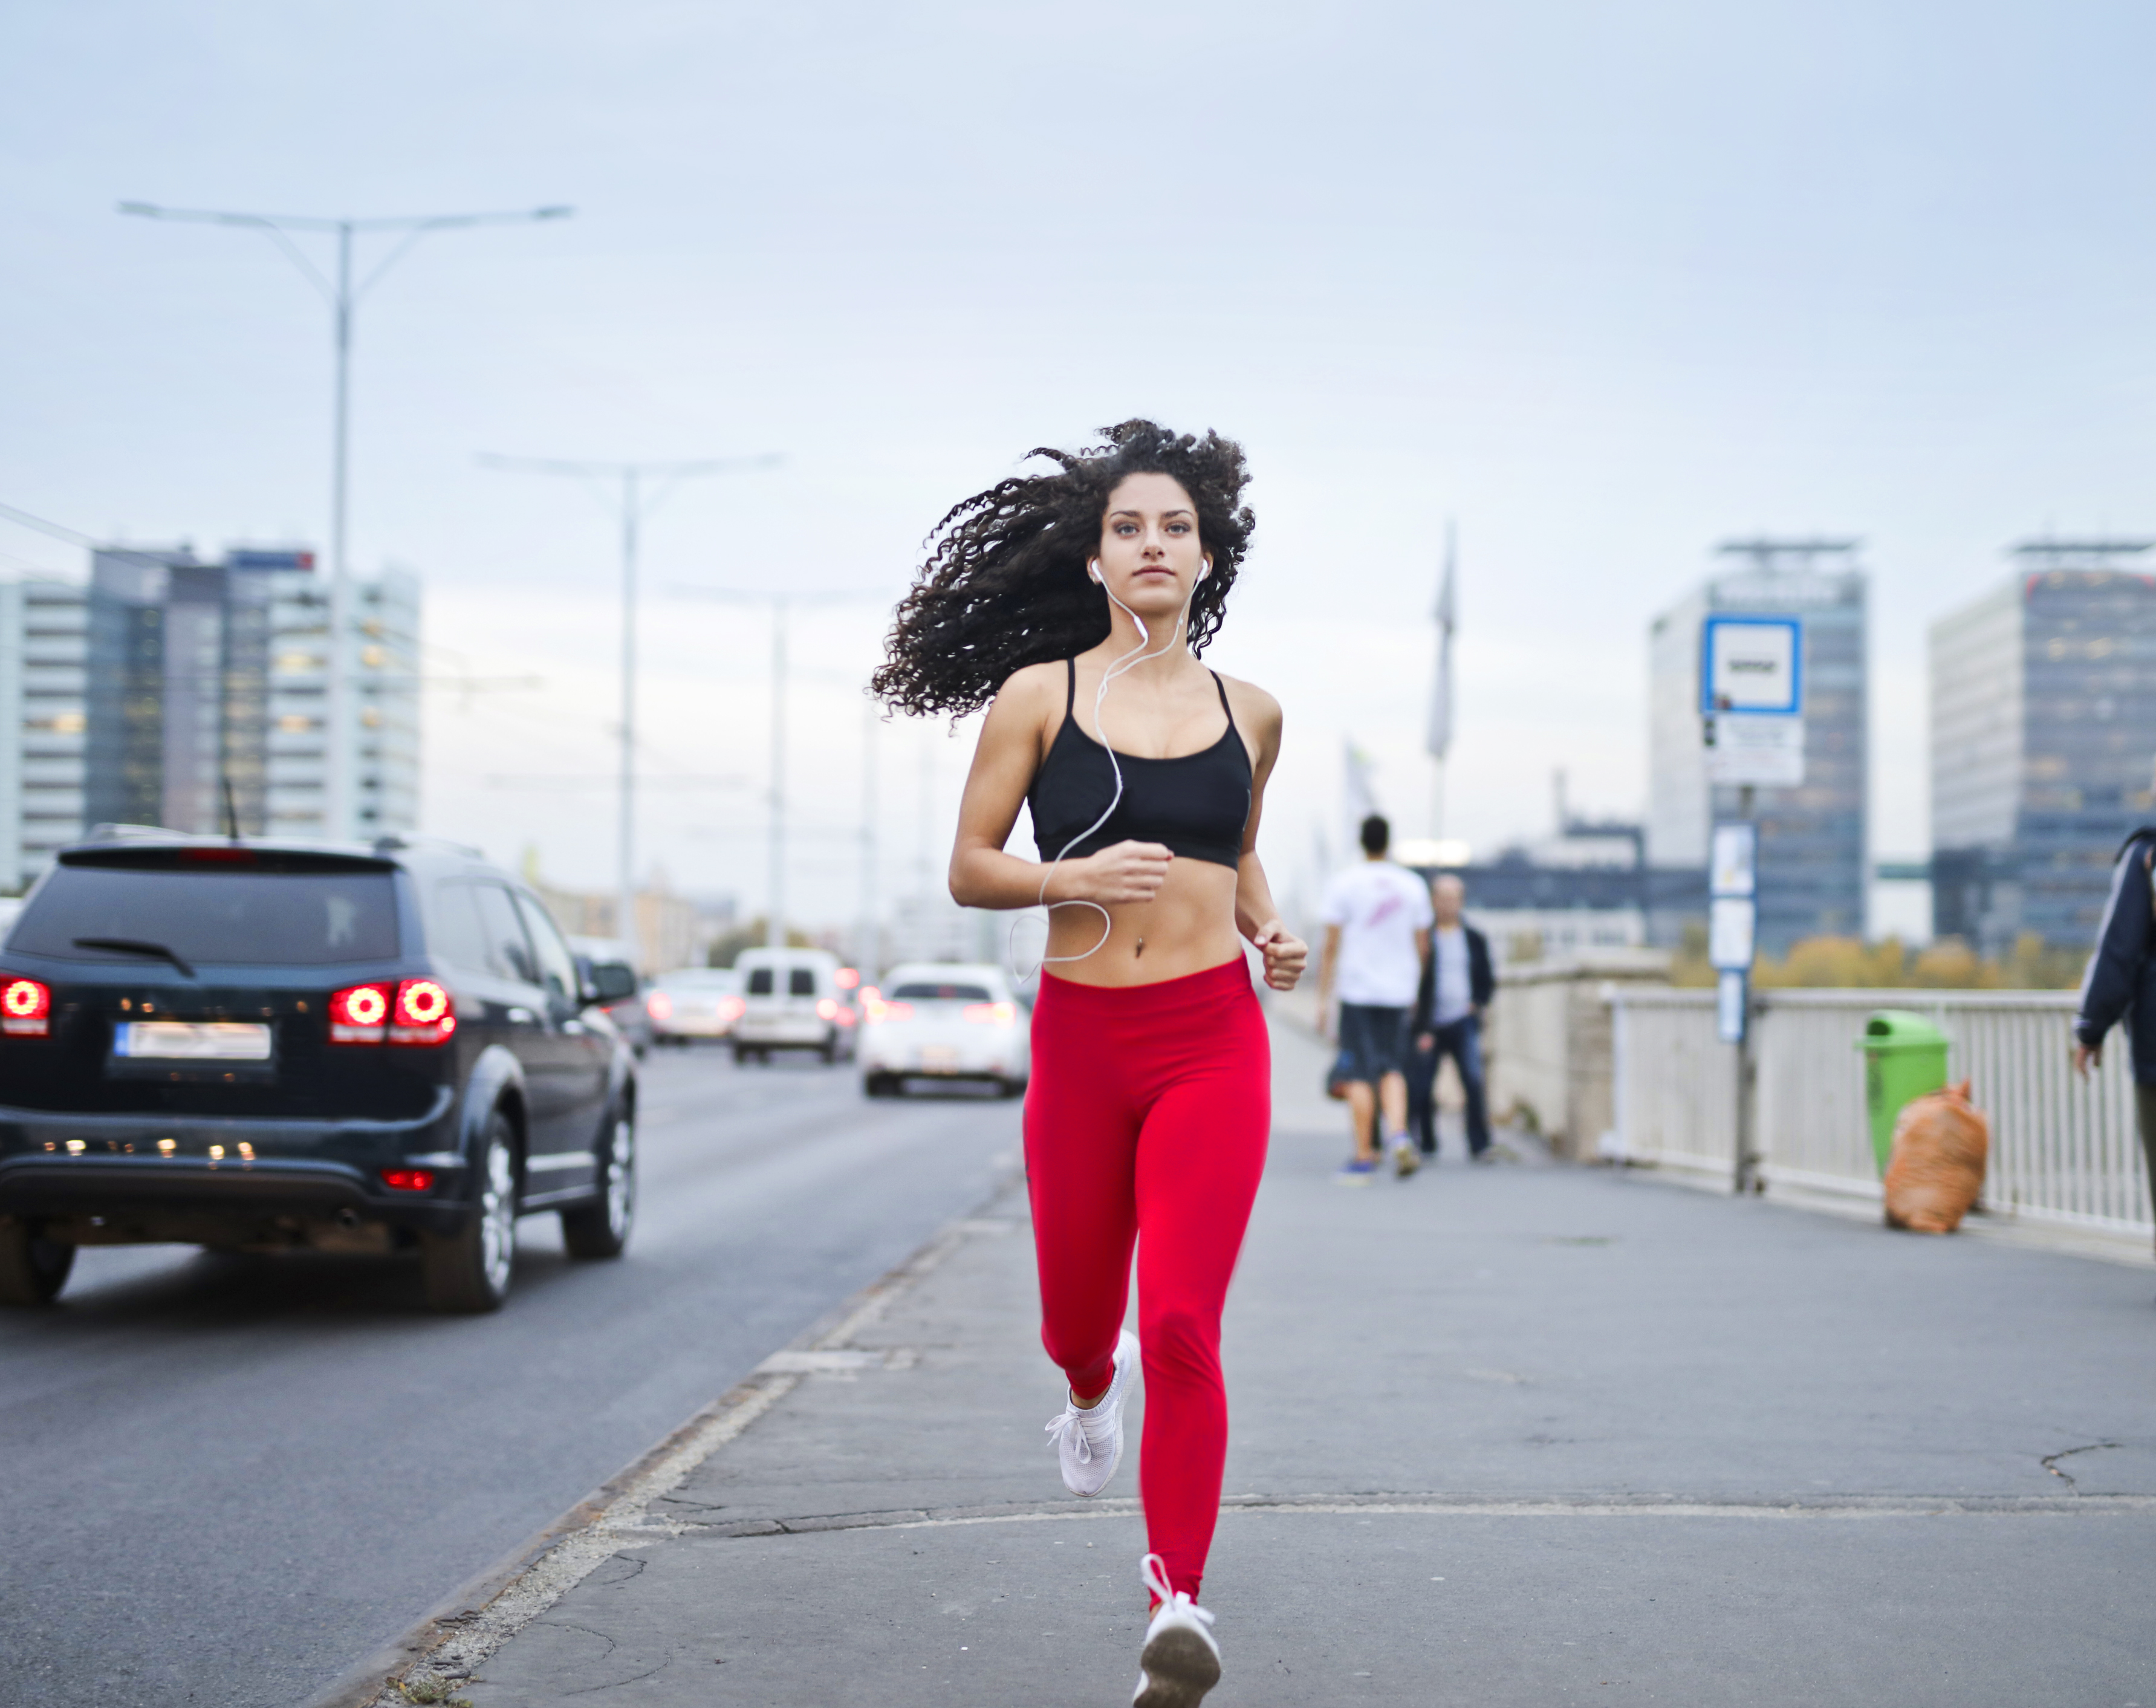 photo-of-woman-listening-to-music-on-earphones-running-down-3764537